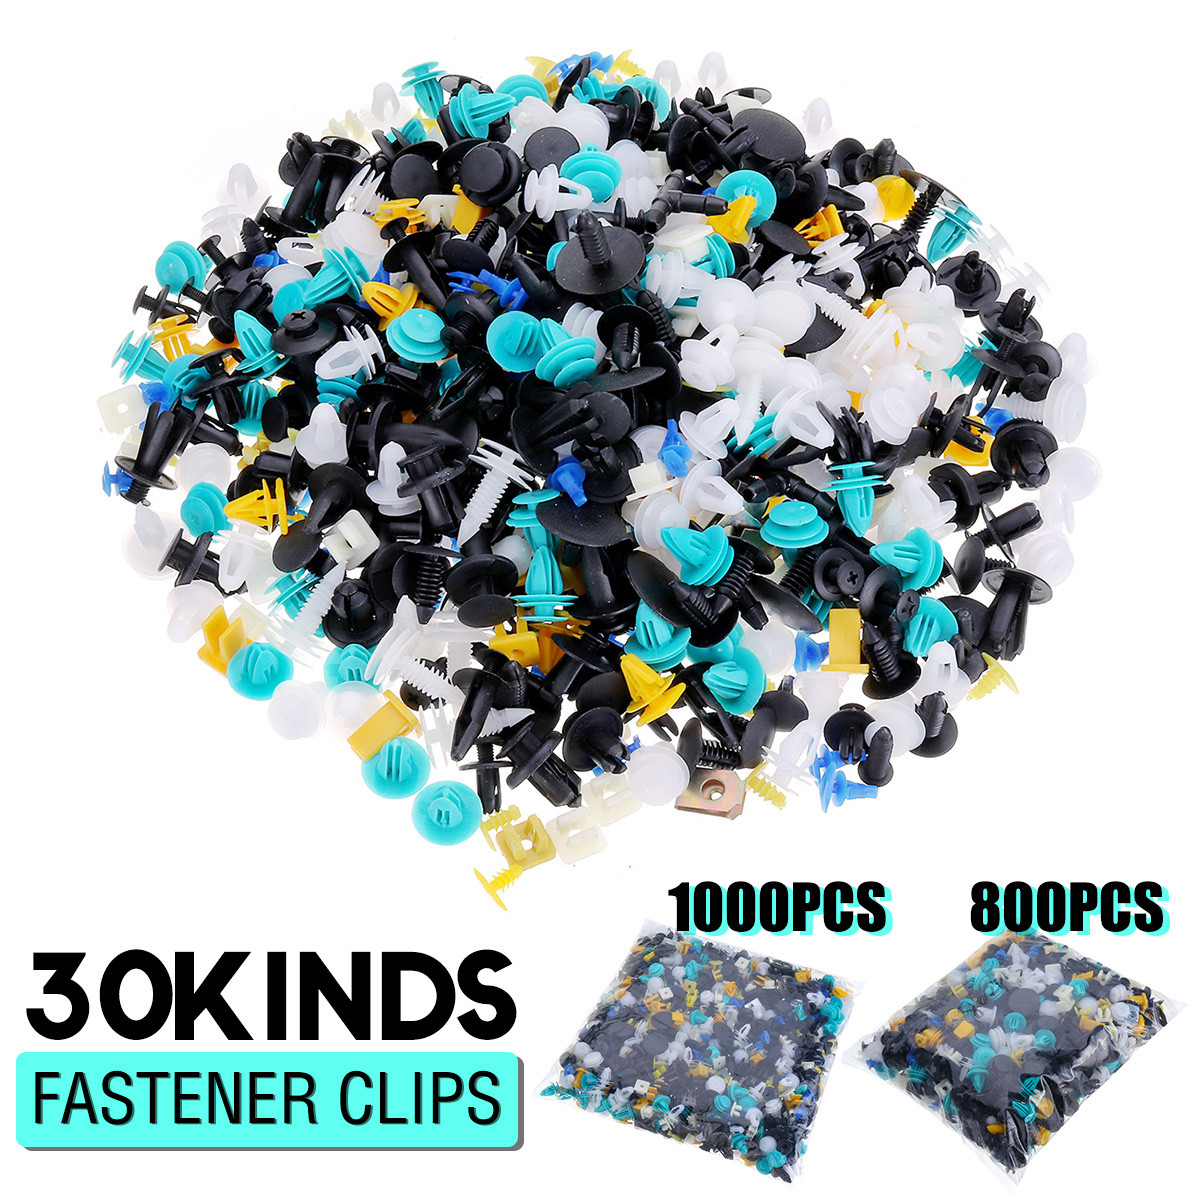 Fastener Clips Rivet Retainer Push Engine Cover 800/1000PCS for Car Bumper Fender Door Trim Panel